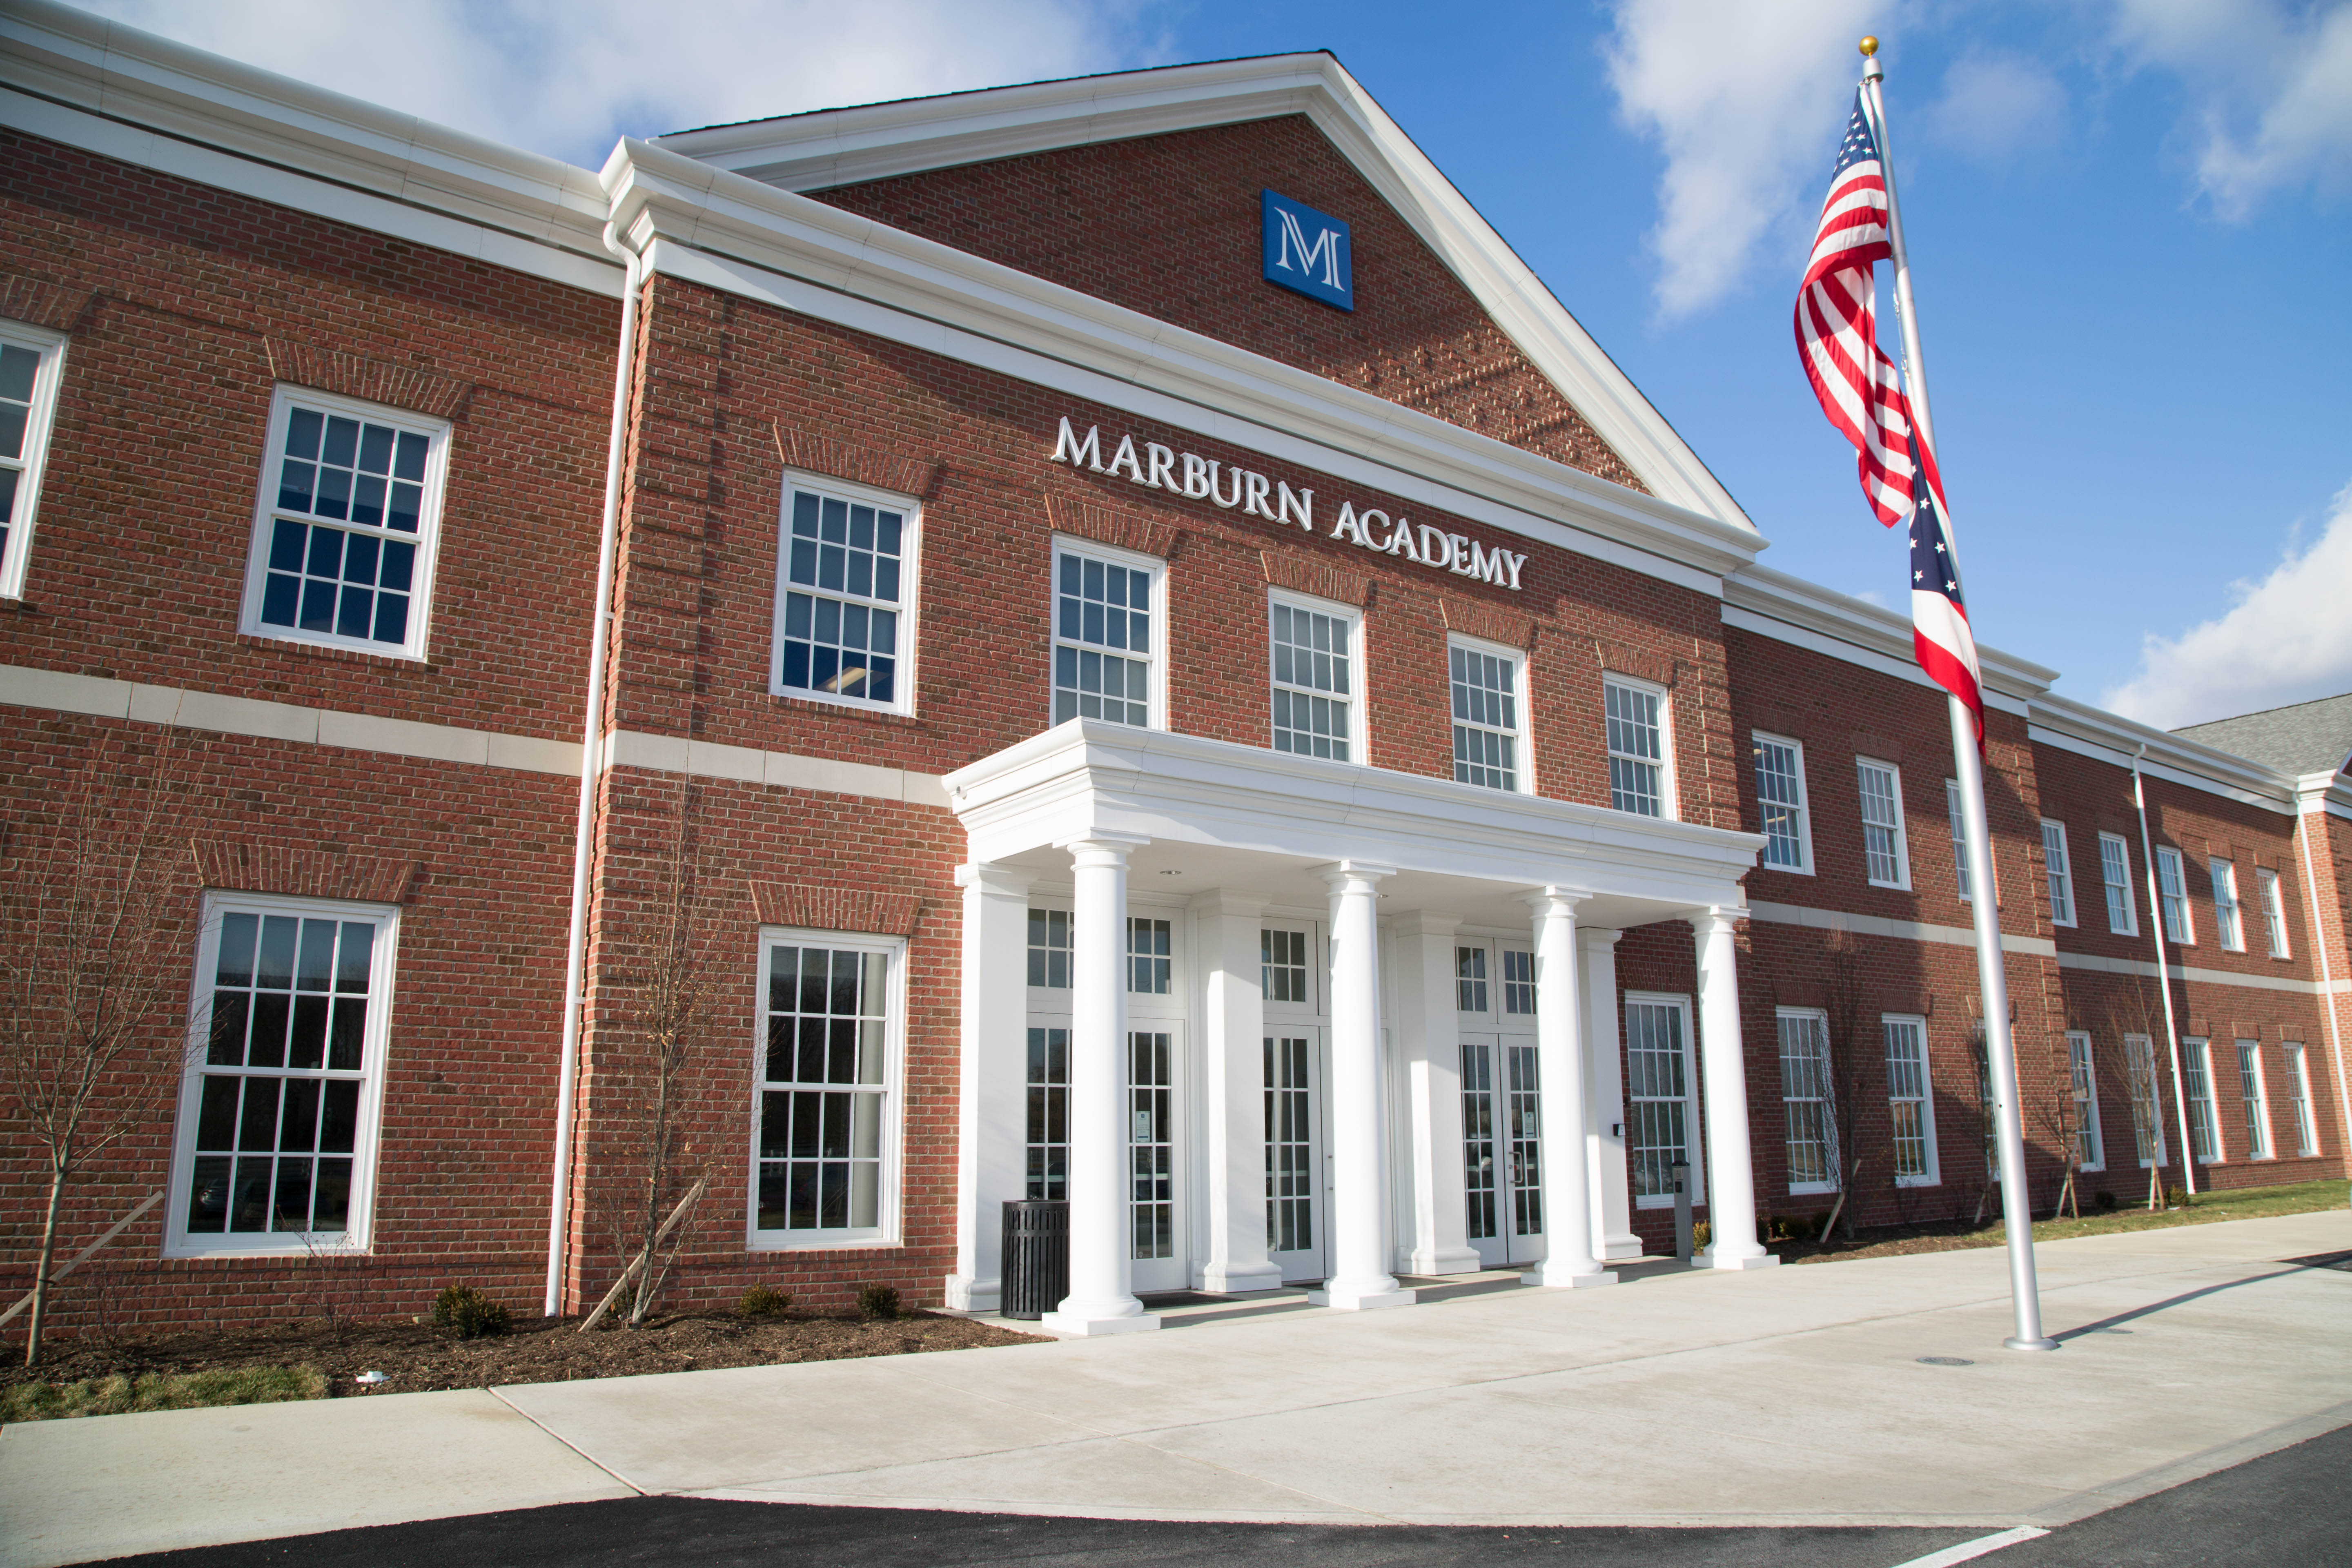 Click here to watch our video about Marburn Academy!